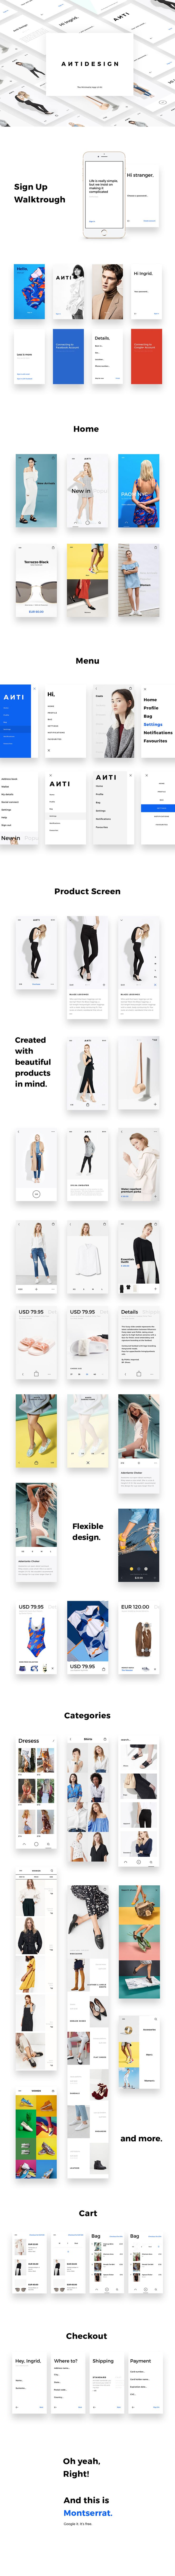 Get it here: http://www.uplabs.com/collections/ui-kits-1aa4d7e8-8c7c-4341-9006-caaa471b3722ANTIDESIGN is a set of mobile based Photoshop files designed for E-Commerce.Simple, clean and intuitive, this UI Kit was designed with the purpose of creating an…